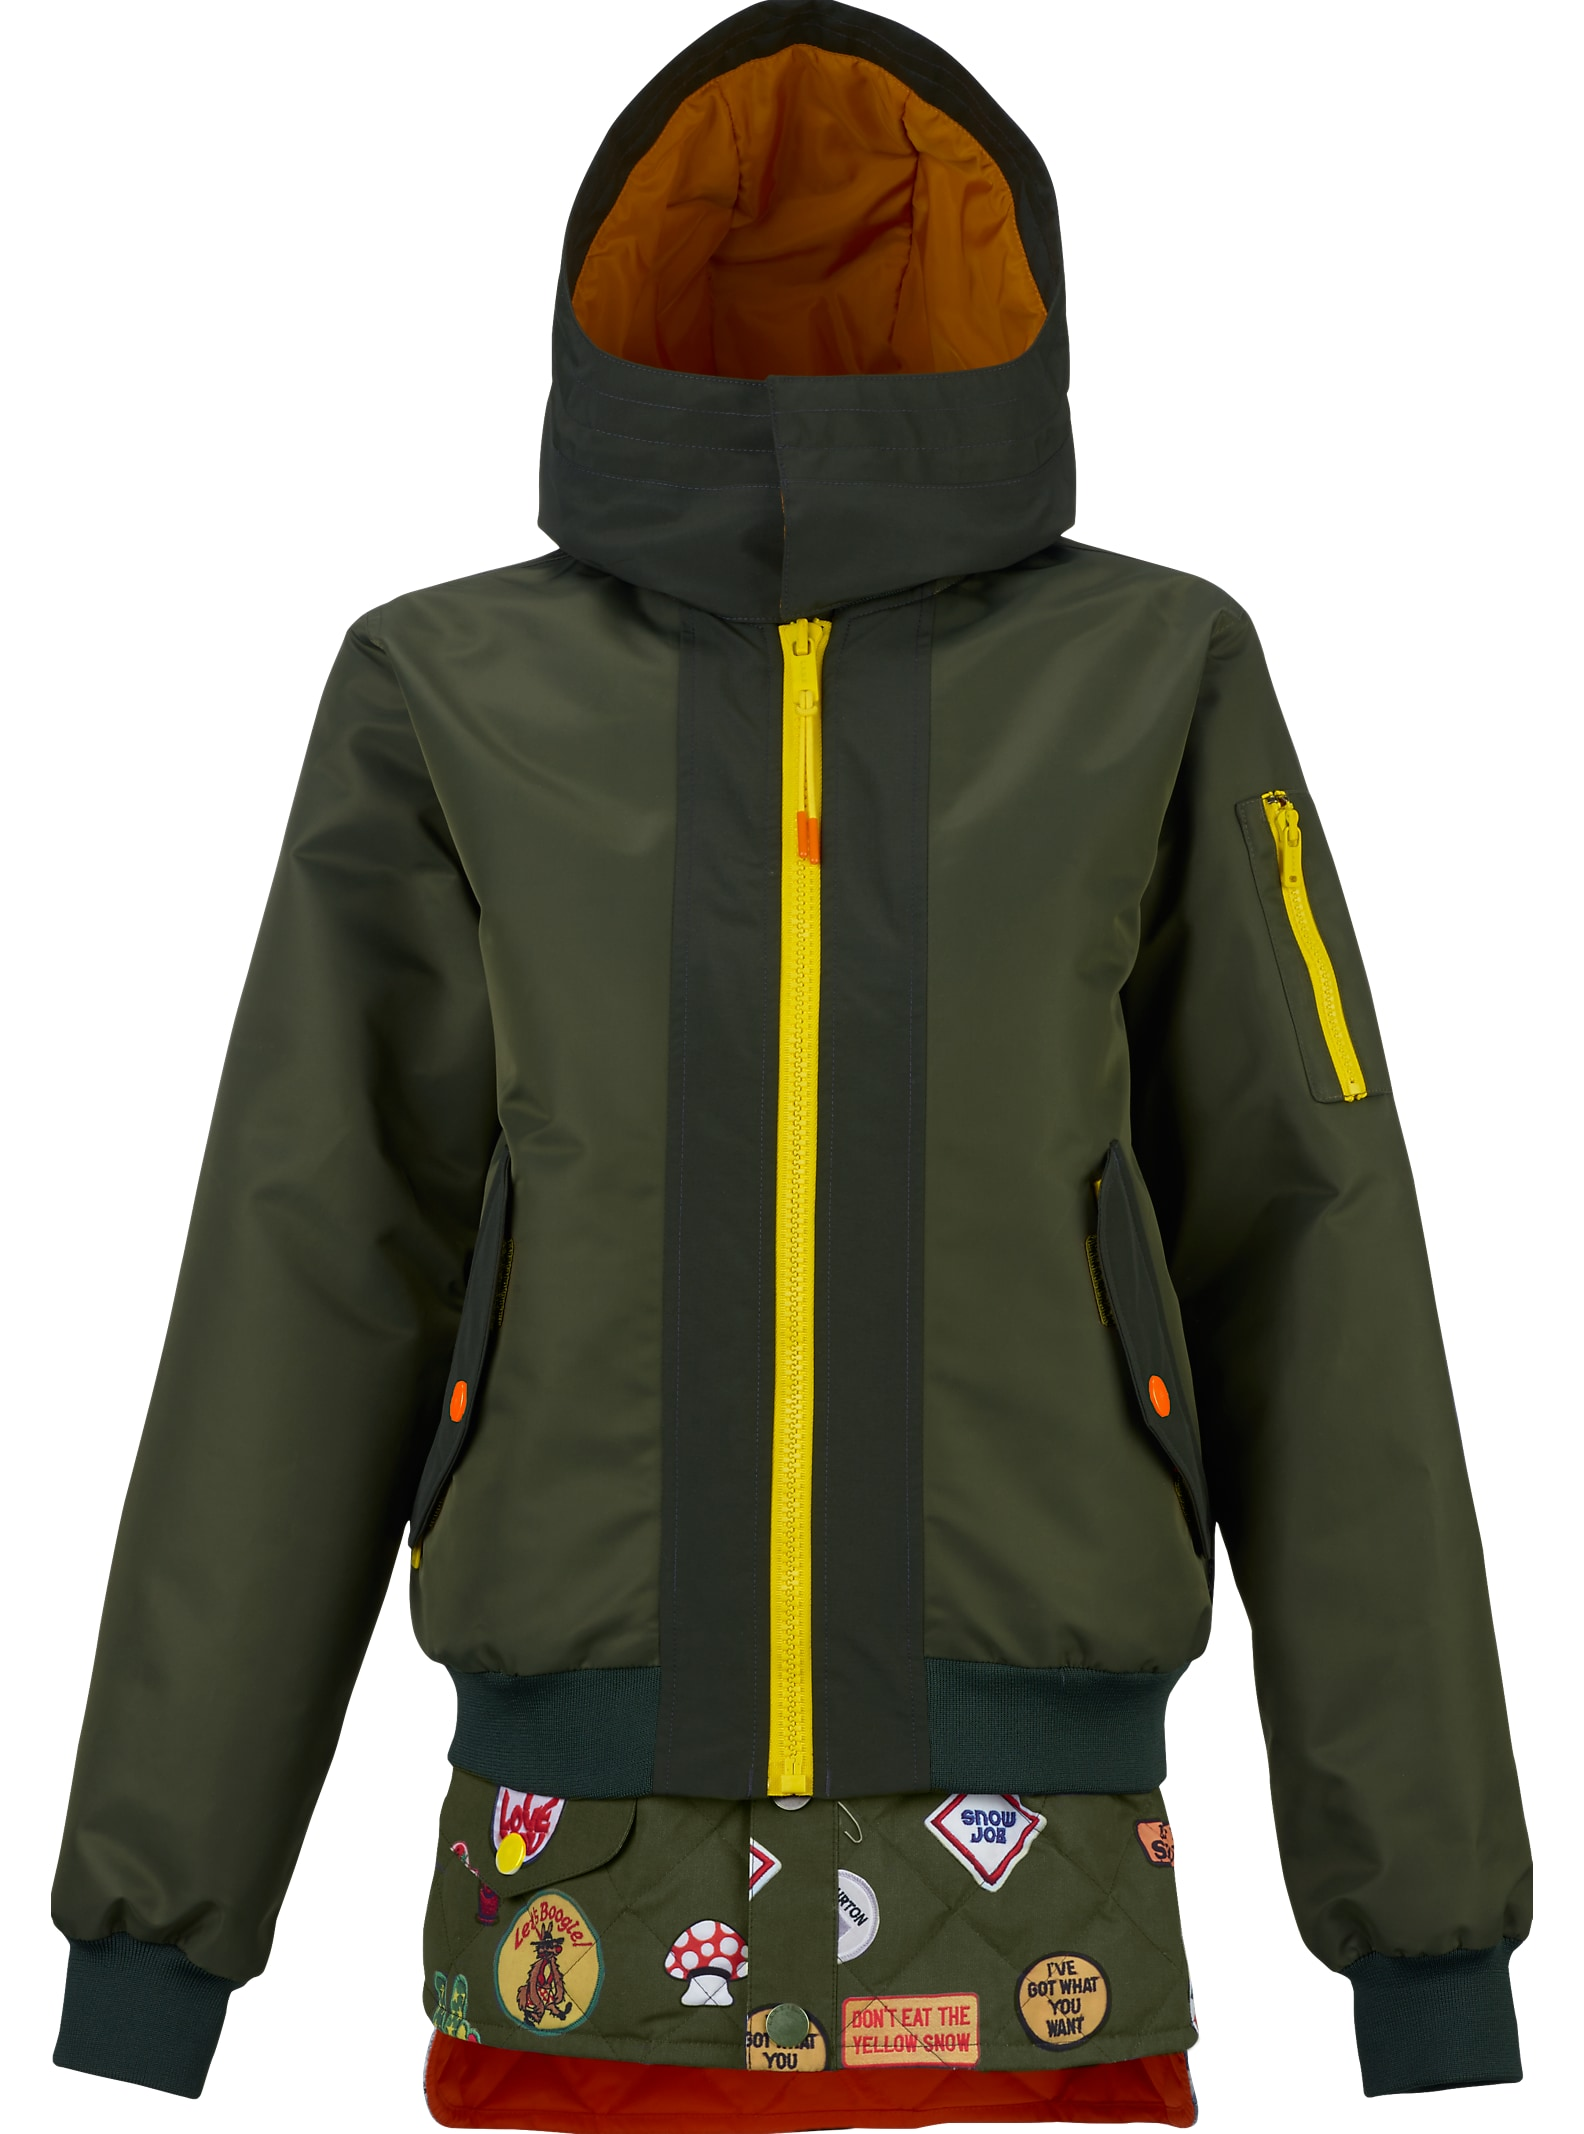 L.A.M.B. x Burton Cherry Bomber Jacket shown in Dusty Olive / Army Green